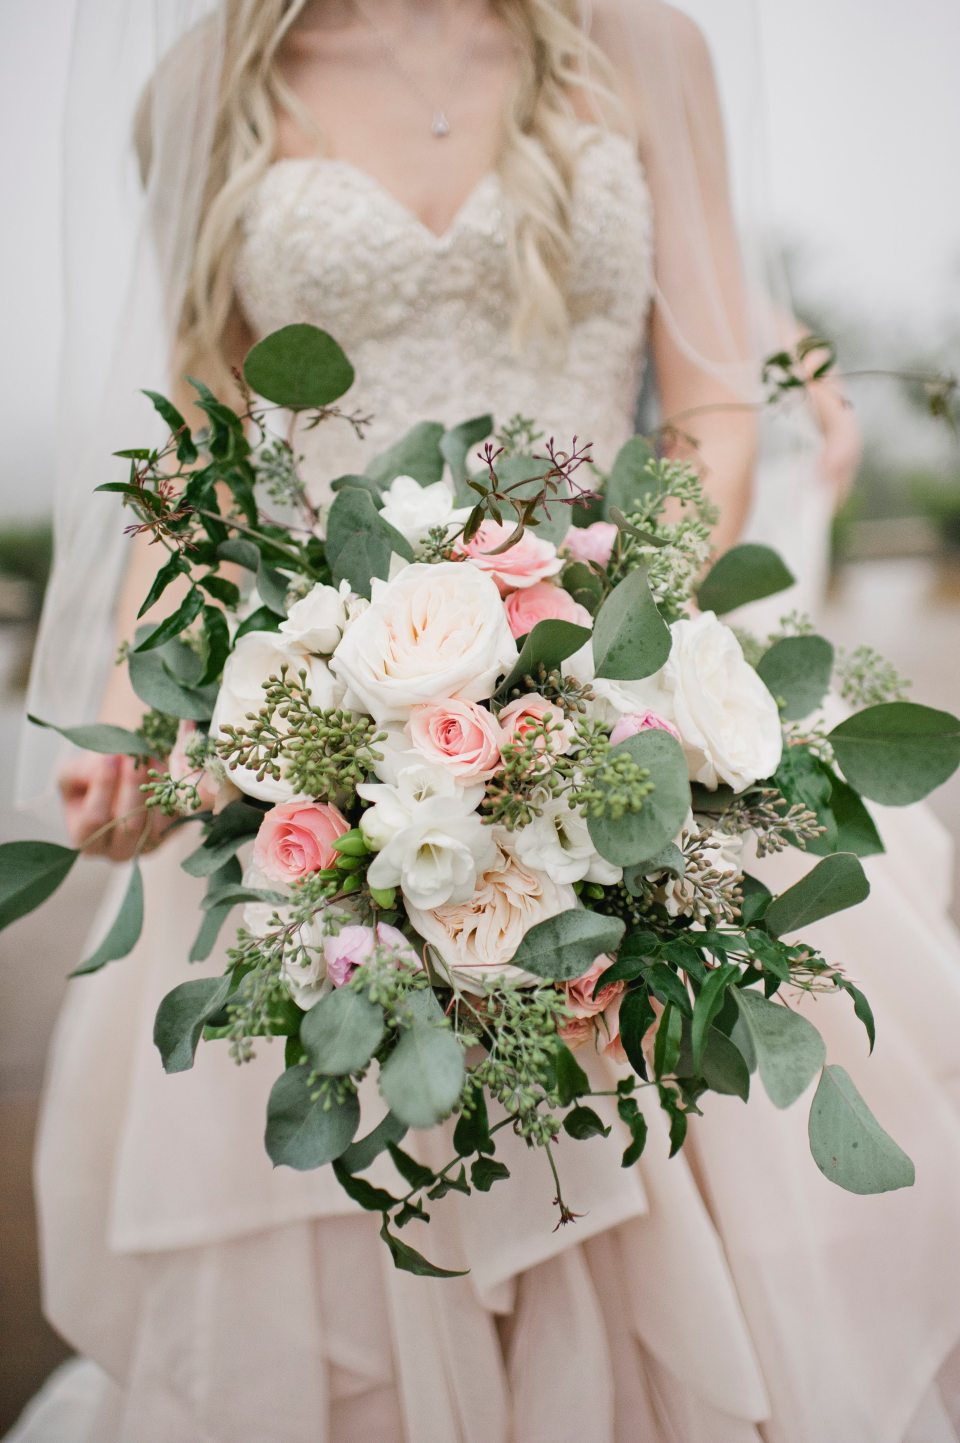 Bouquets of austin blog bouquets of austin bride in blush wedding gown brides bouquet of silver dollar eucalyptus and blush flowers izmirmasajfo